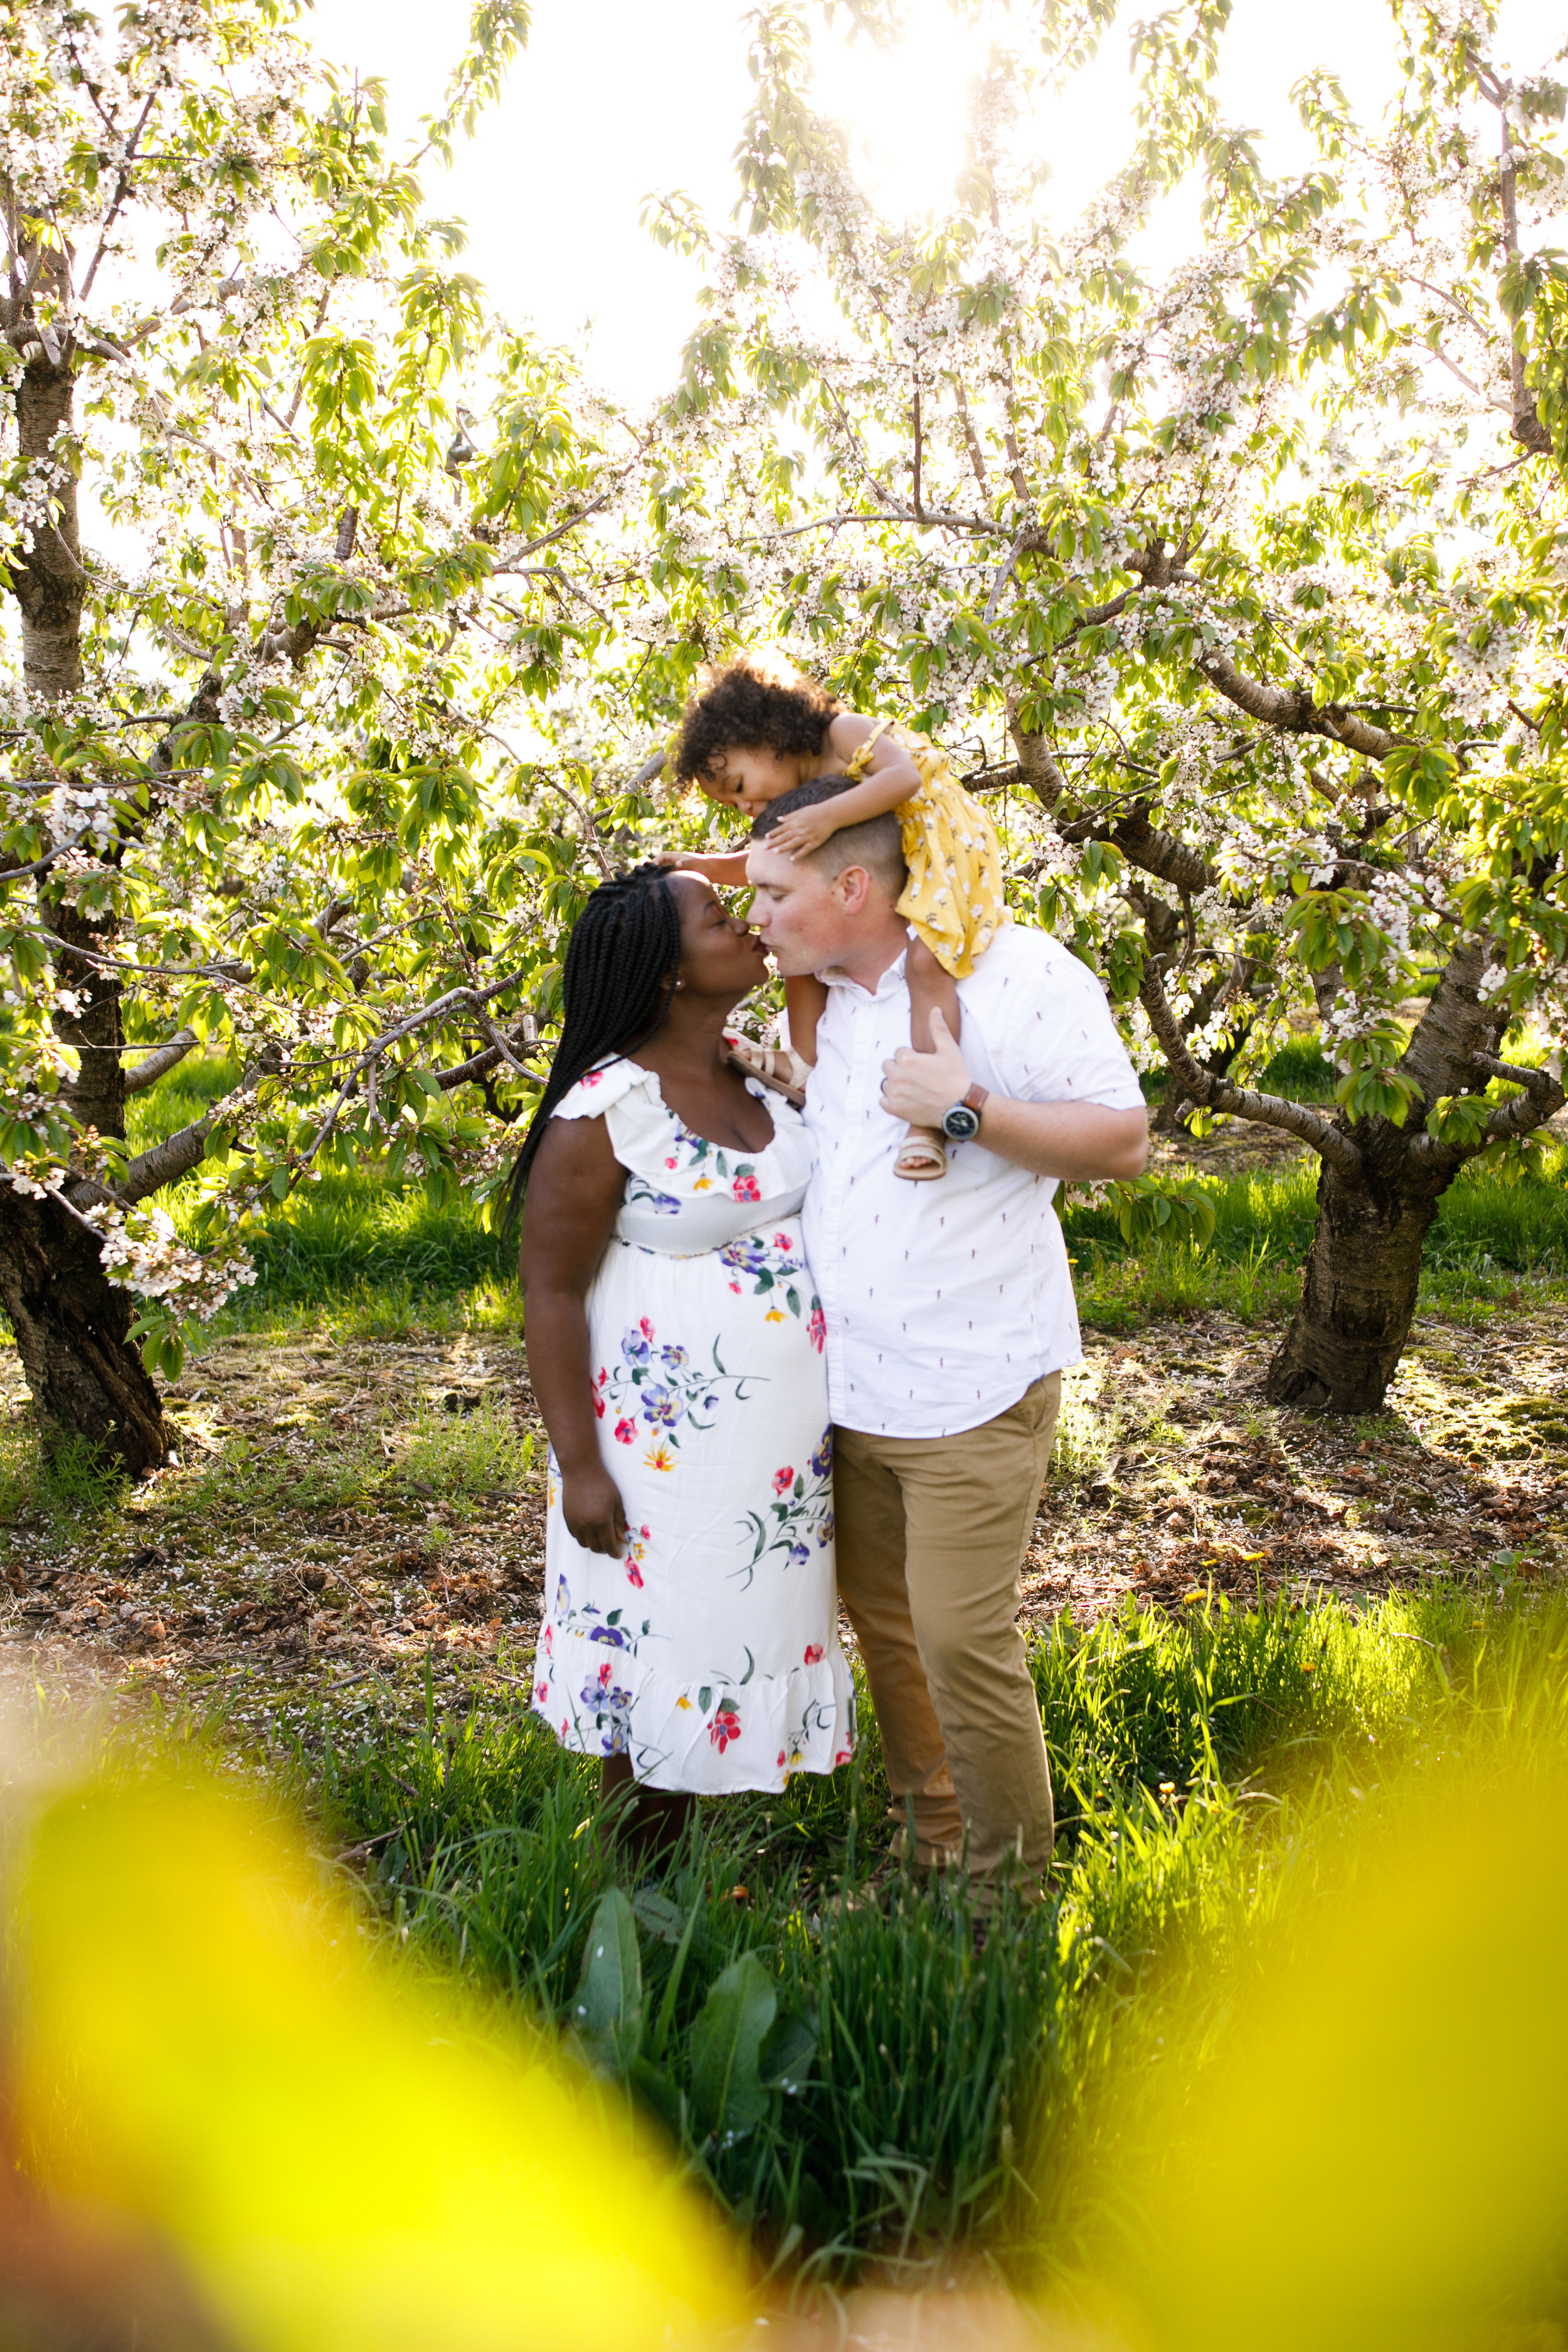 Grand Rapids family photographer - j darling photo - jessica darling - grand rapids photographer - family session - apple blossoms - sparta - michigan photographer007.jpg